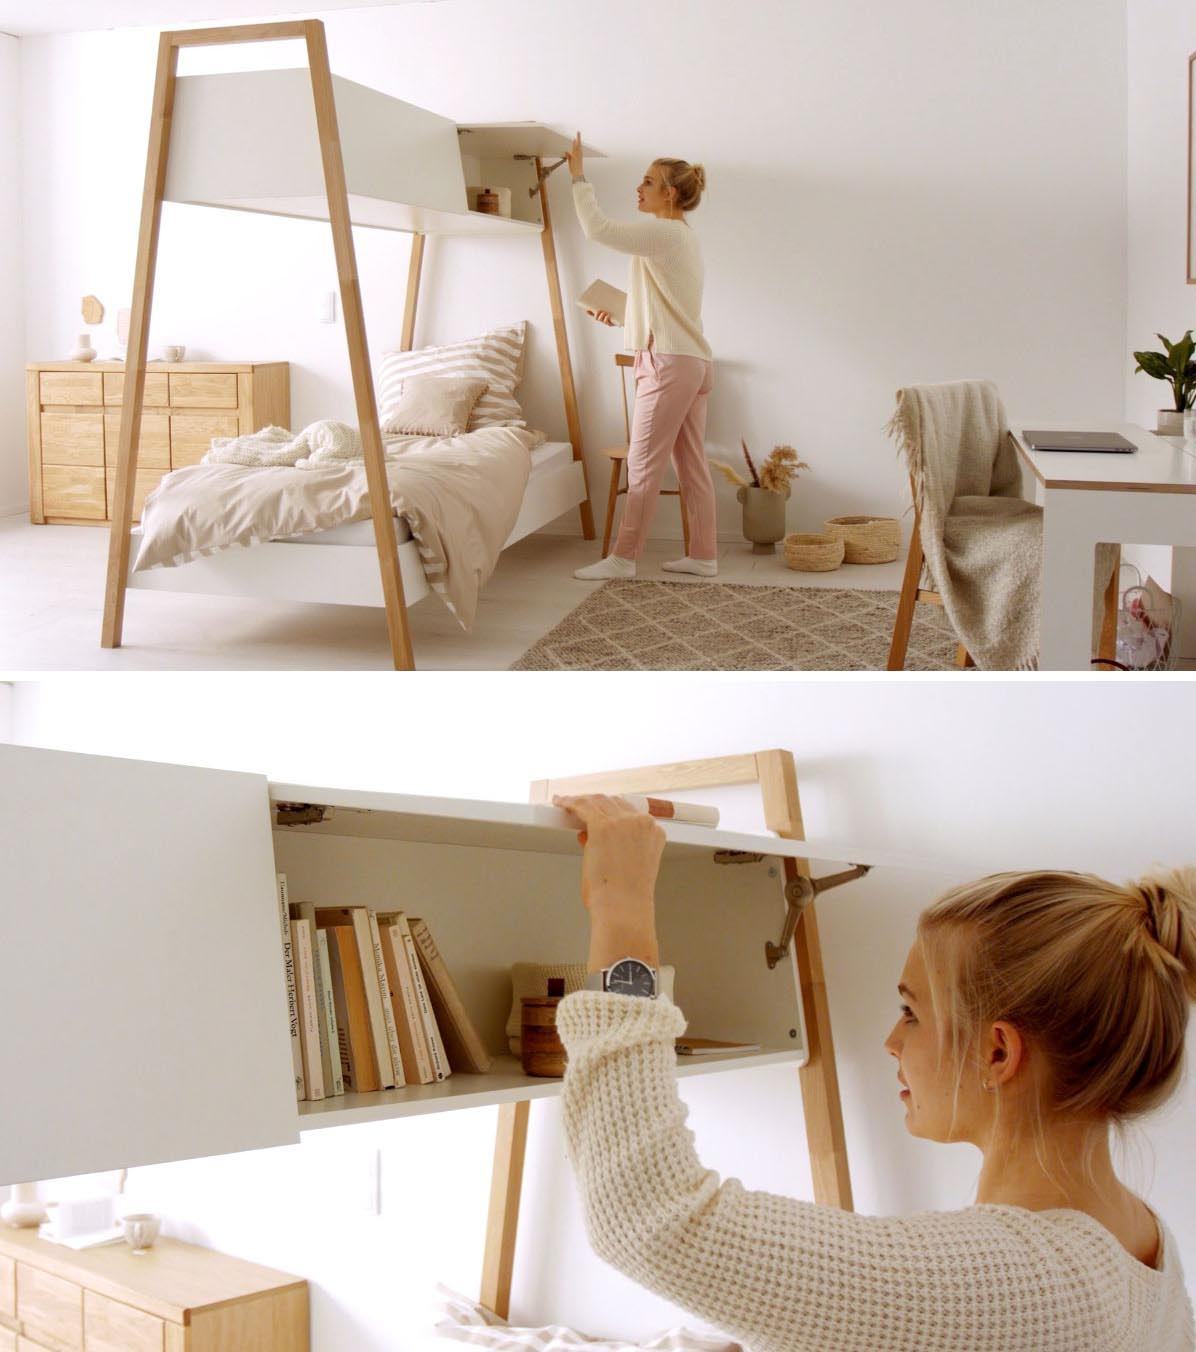 A modern bed design with Nordic influence, includes added storage cabinets above.